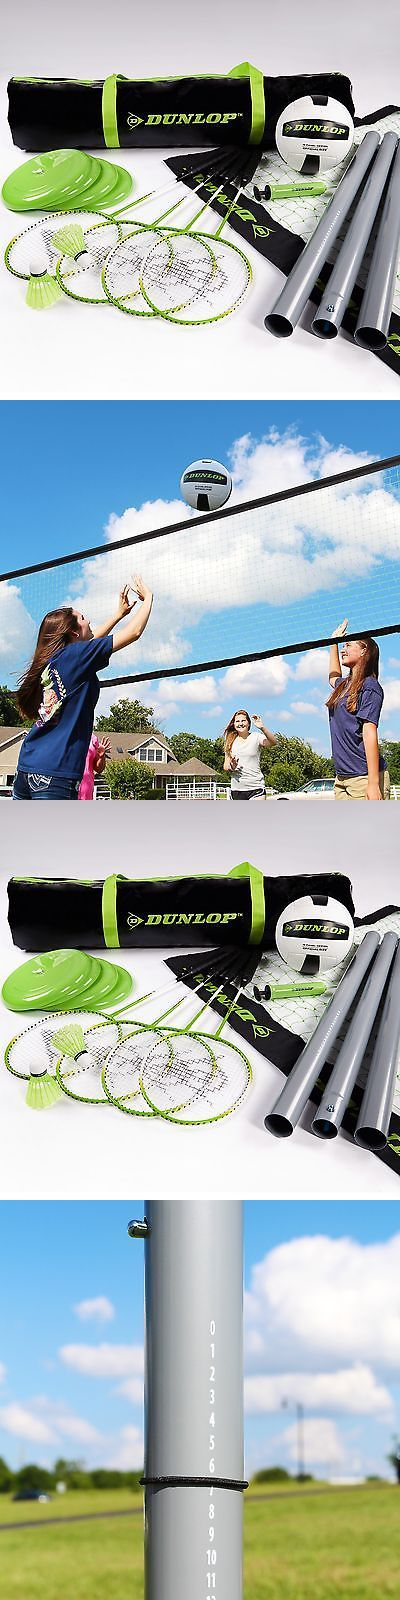 Other Backyard Games 159081: Dunlop Professional Volleyball Badminton Games: Classic Outdoor Lawn Game Set... -> BUY IT NOW ONLY: $141.95 on eBay!